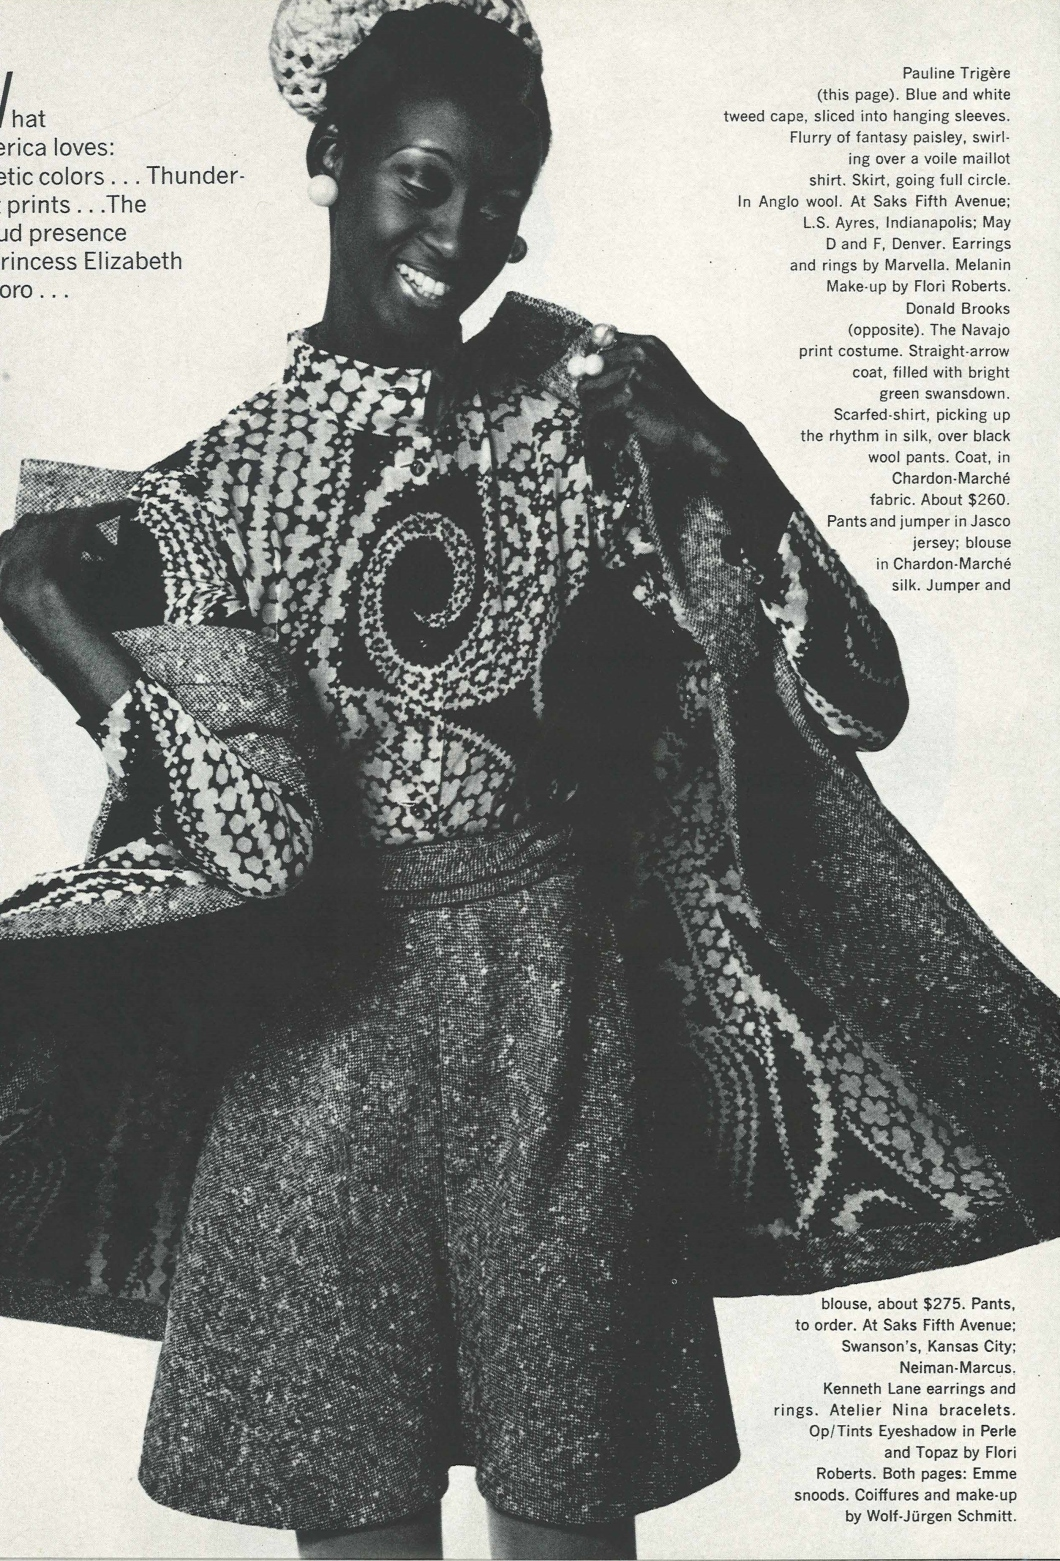 Vintage Fashion Spread Harper's Bazaar Feb 1970 Fashion America Loves by Bill King